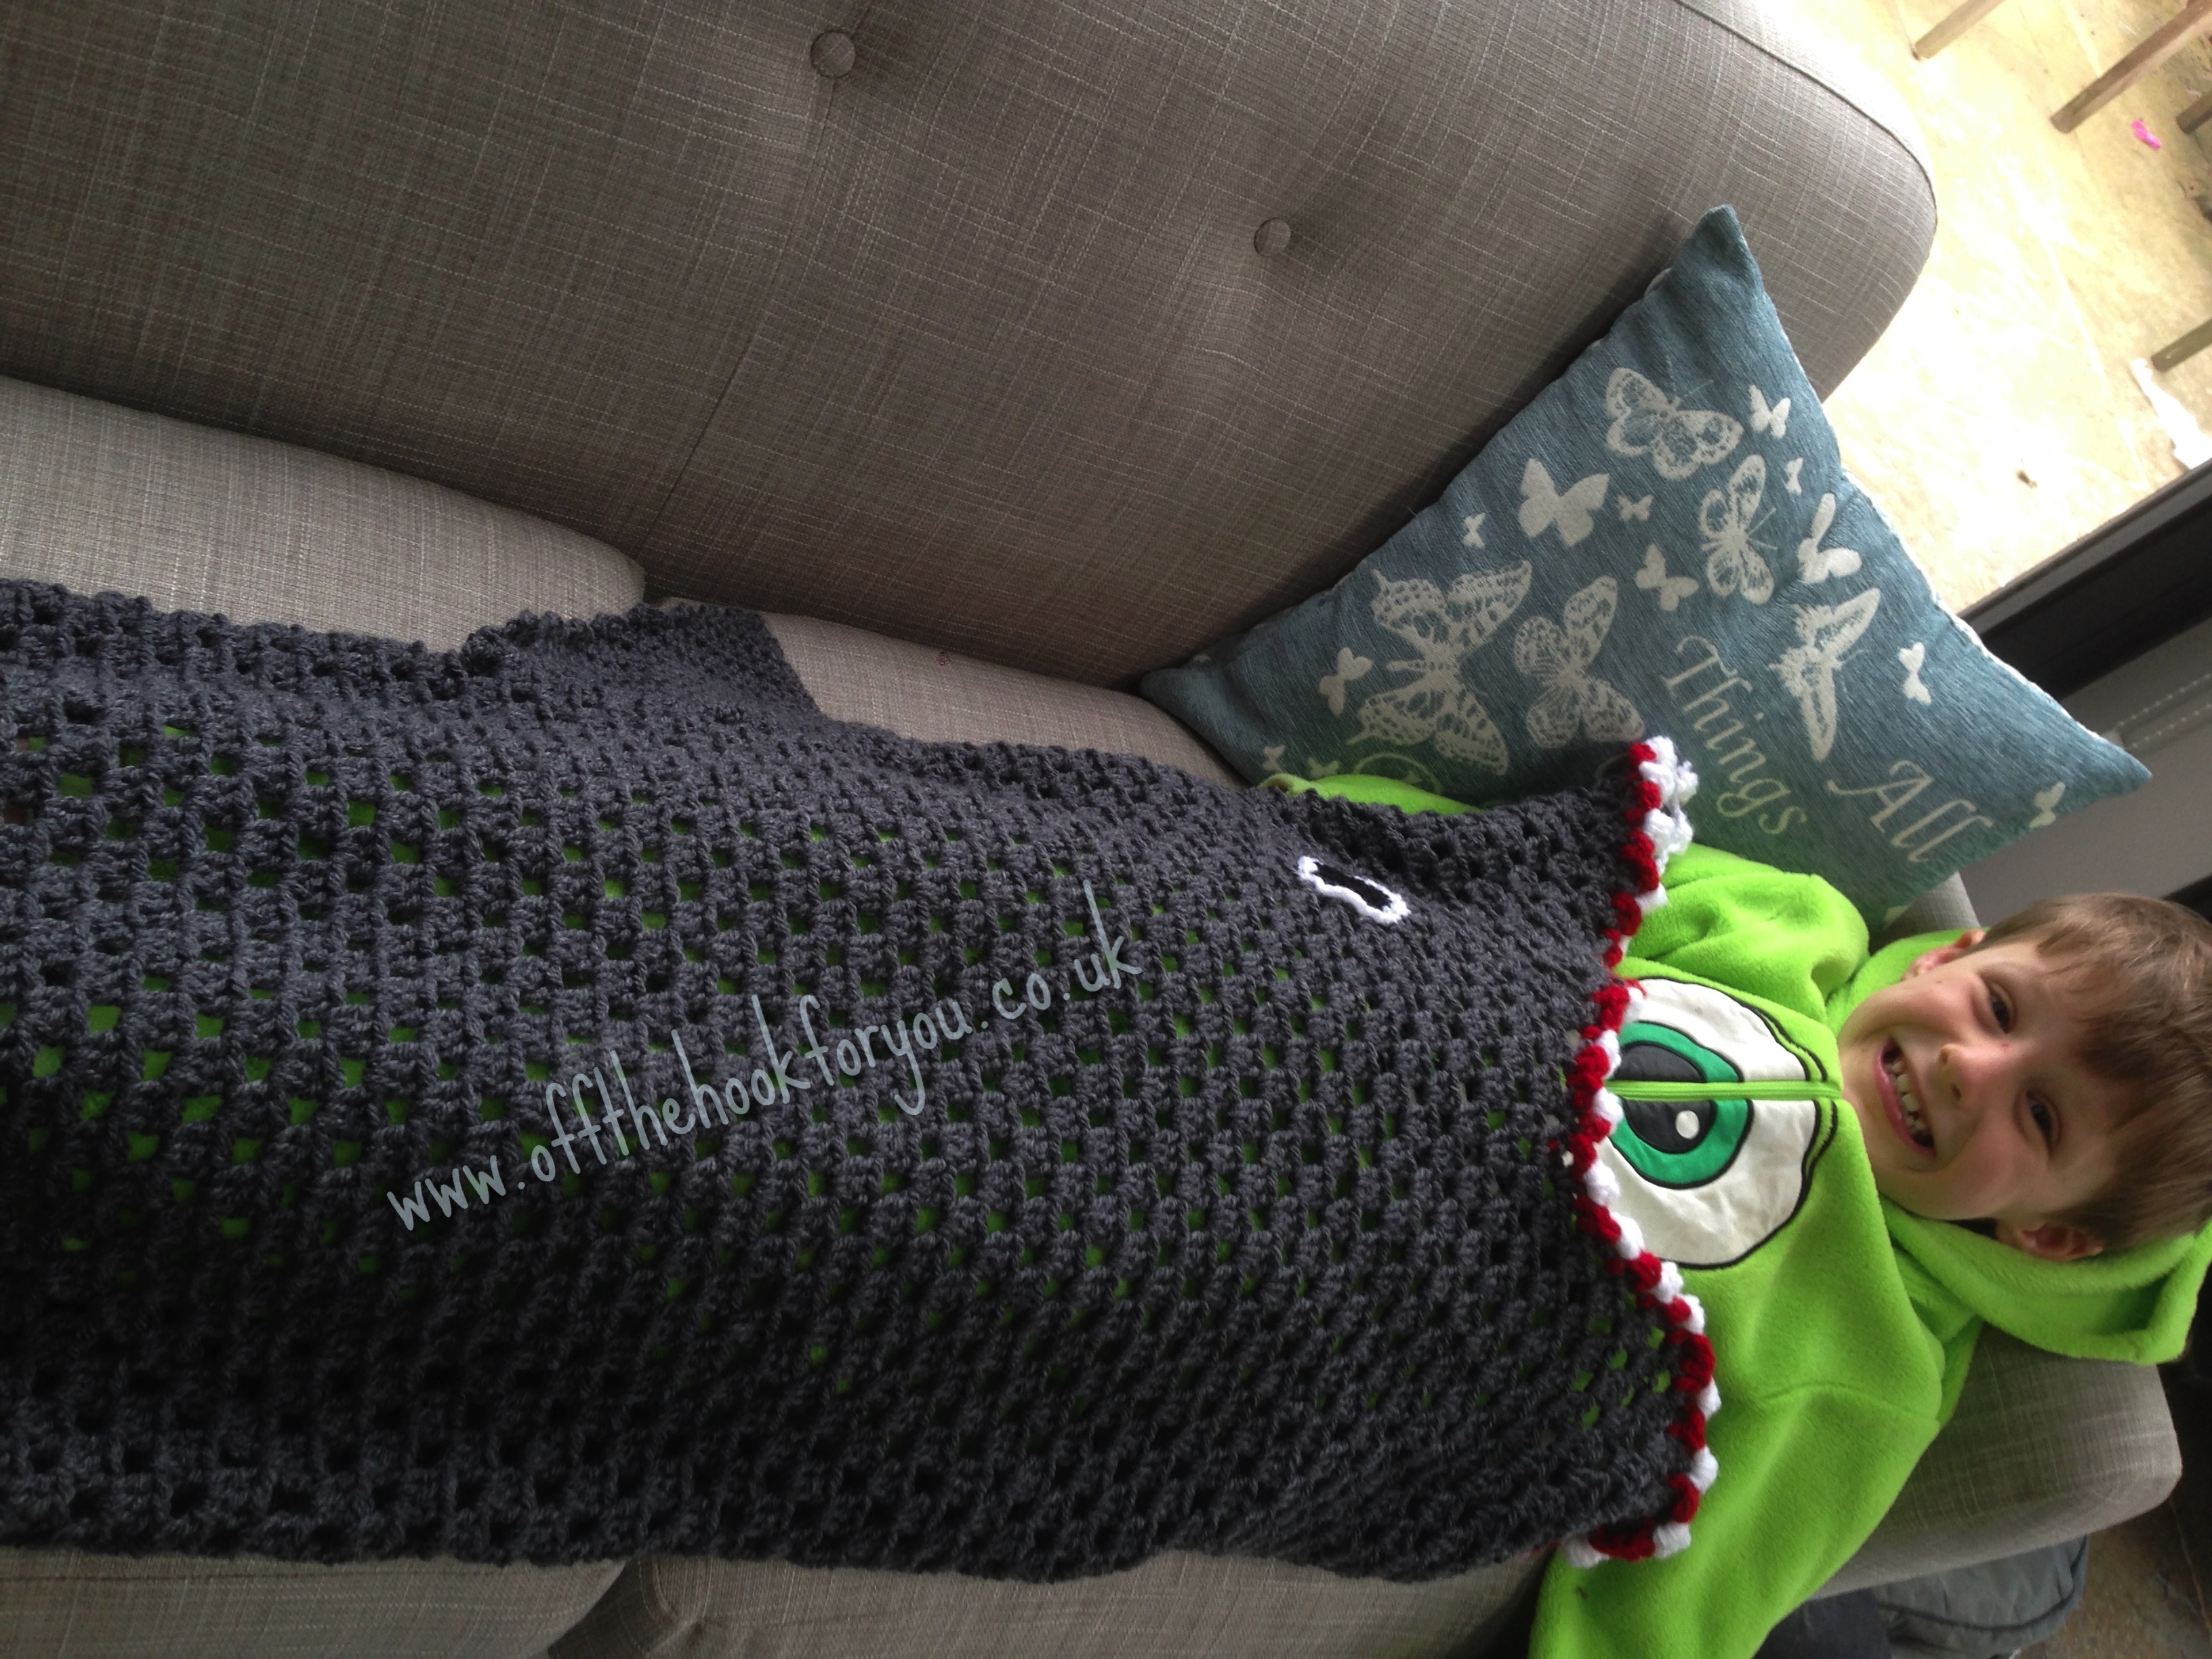 Knitting Pattern For A Shark Blanket : Eaten by a Shark - The pattern .... finally - offthehookforyou